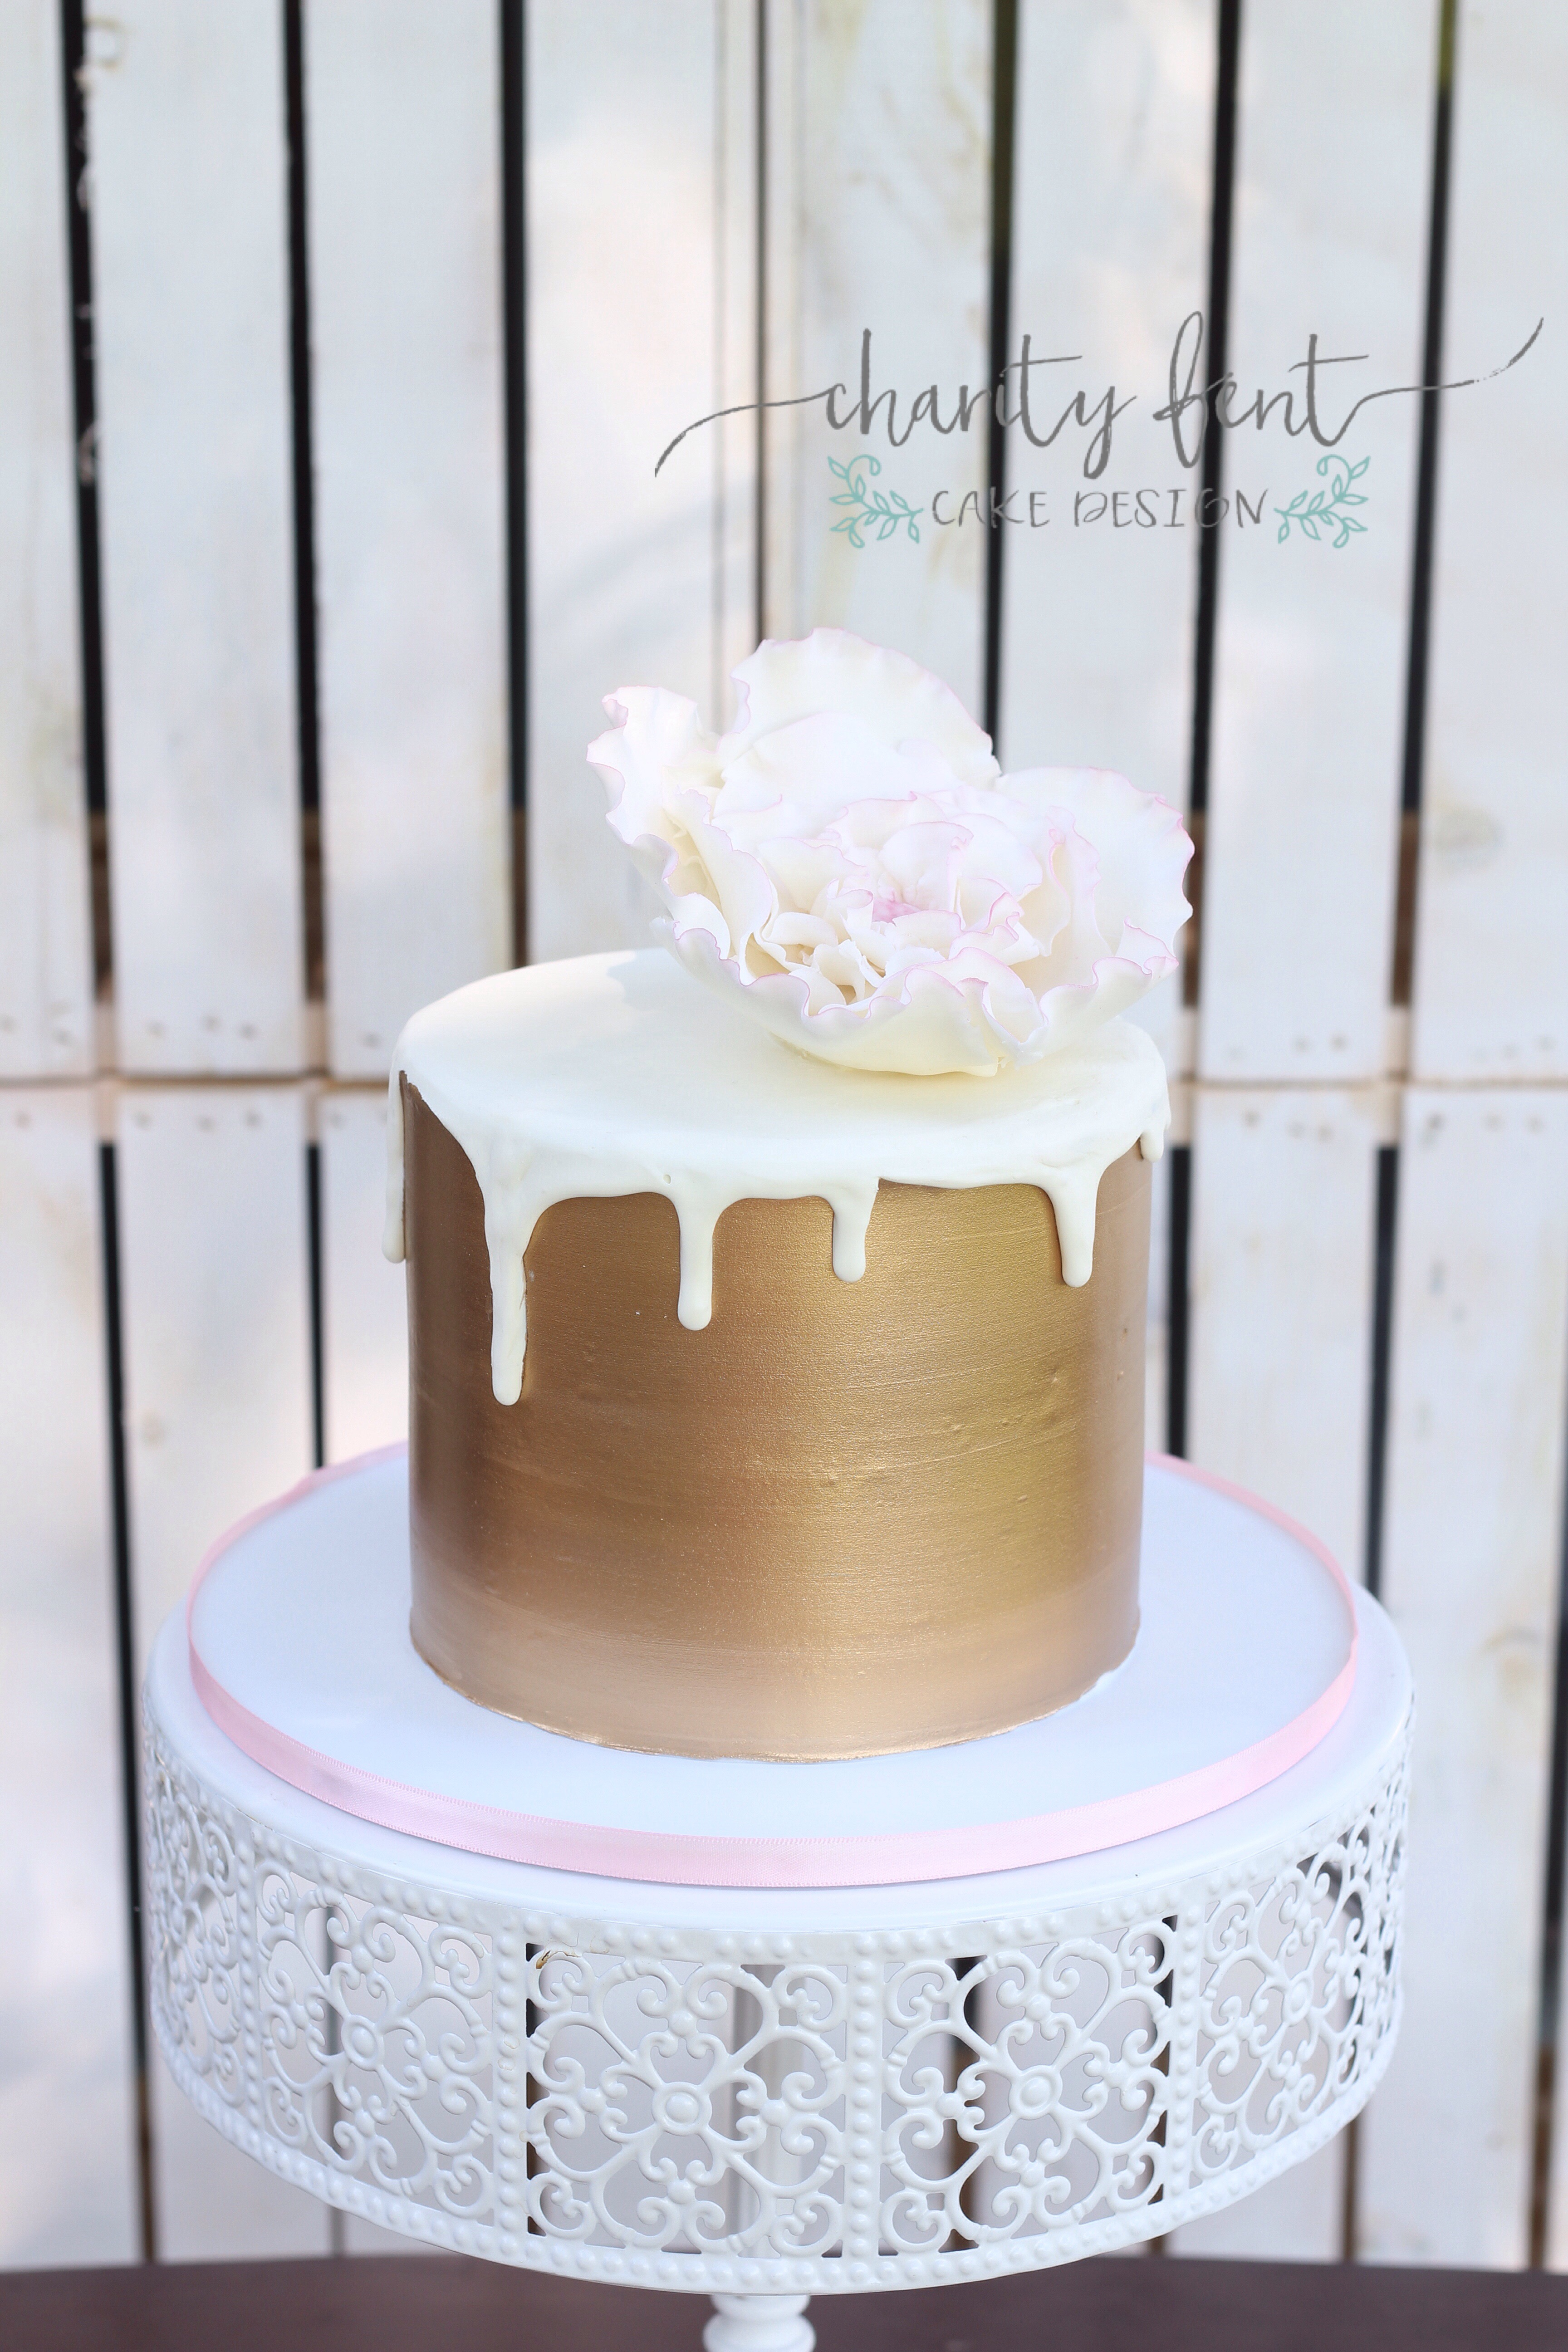 Simple Cute Cake Charity Fent Cake Design